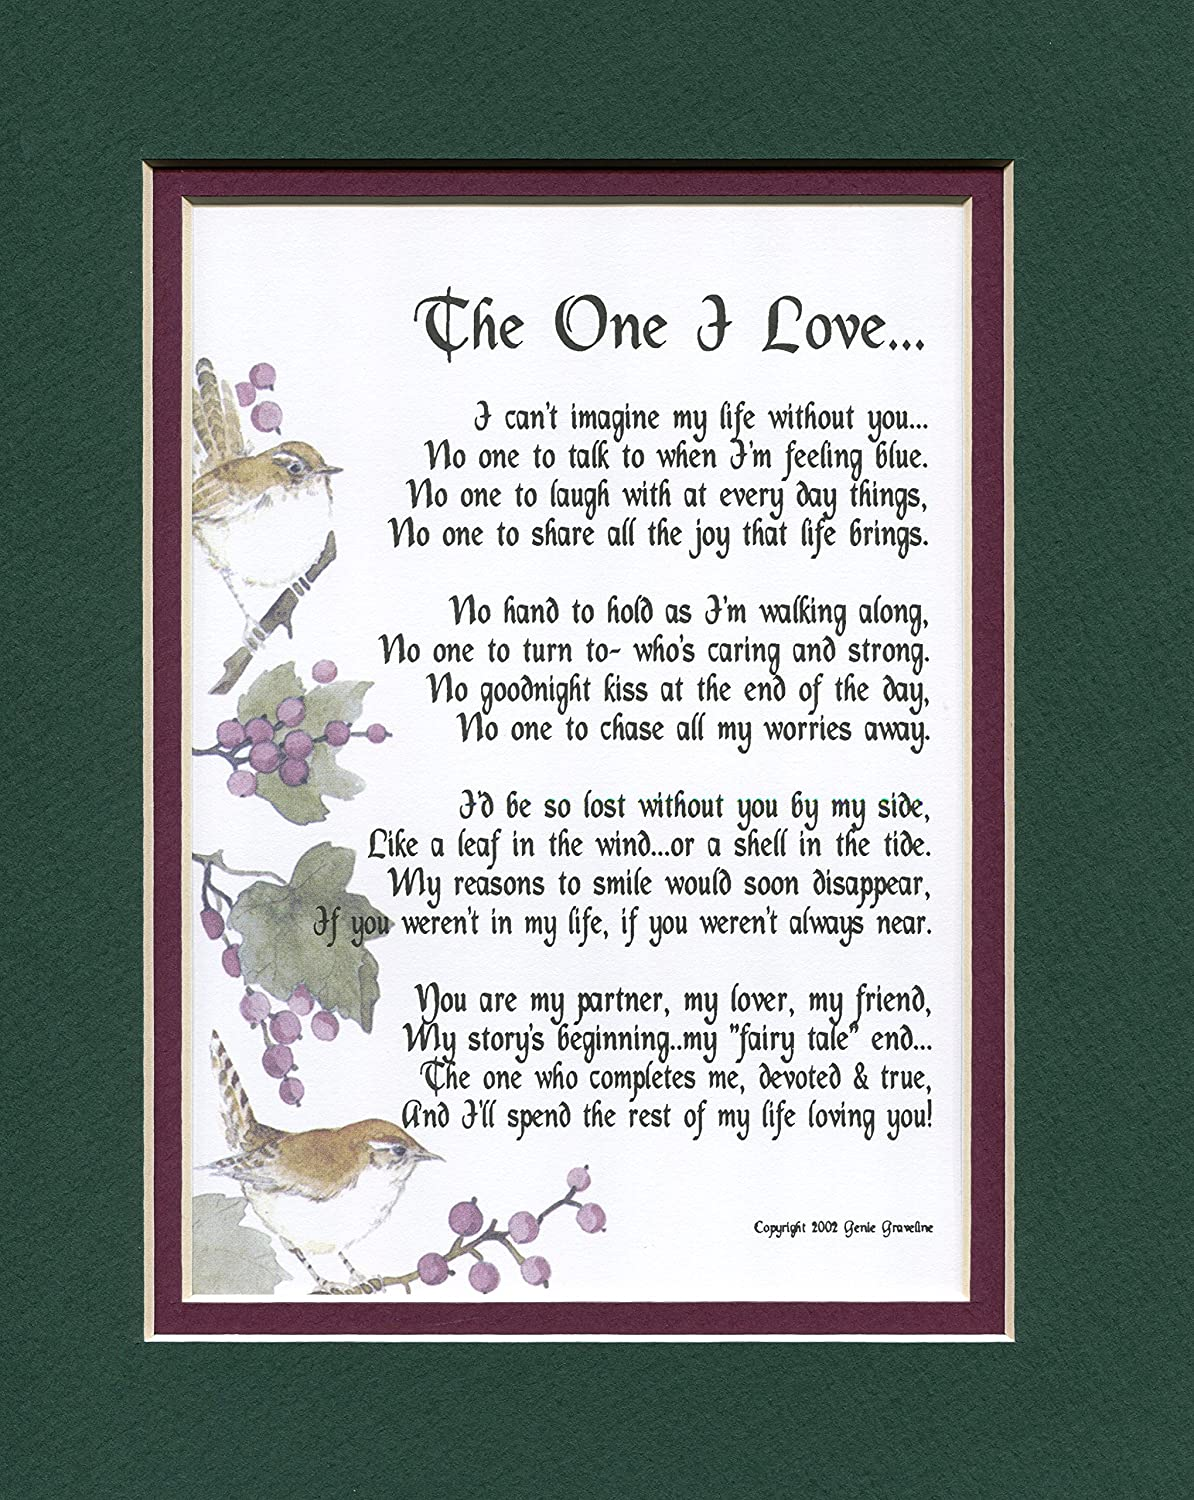 The One I Love A Sentimental Gift For A Wife, Husband, Girlfriend Or Boyfriend. Touching 8x10 Poem, Double-matted In Dark Green/Burgundy, And Enhanced With Watercolor Graphics.